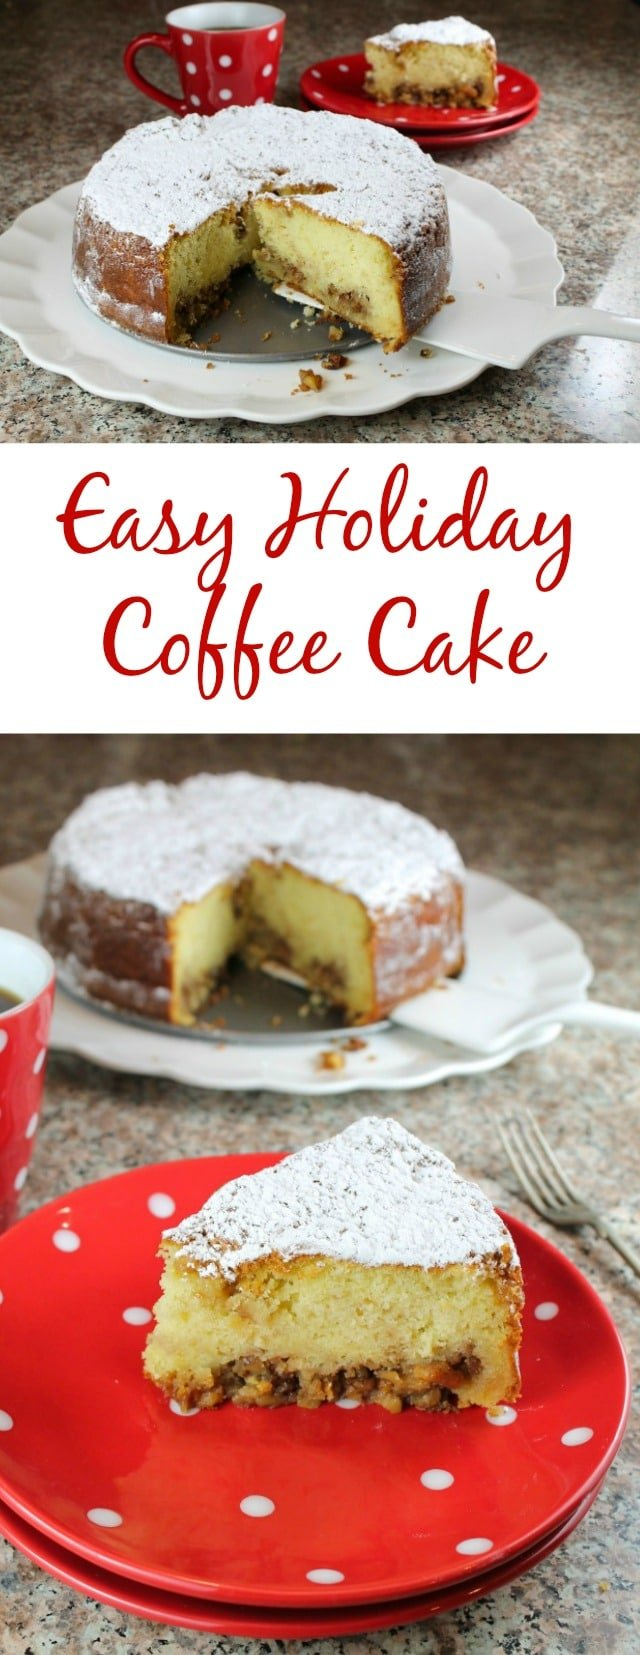 Easy Holiday Coffee Cake Recipe from Miss in the Kitchen